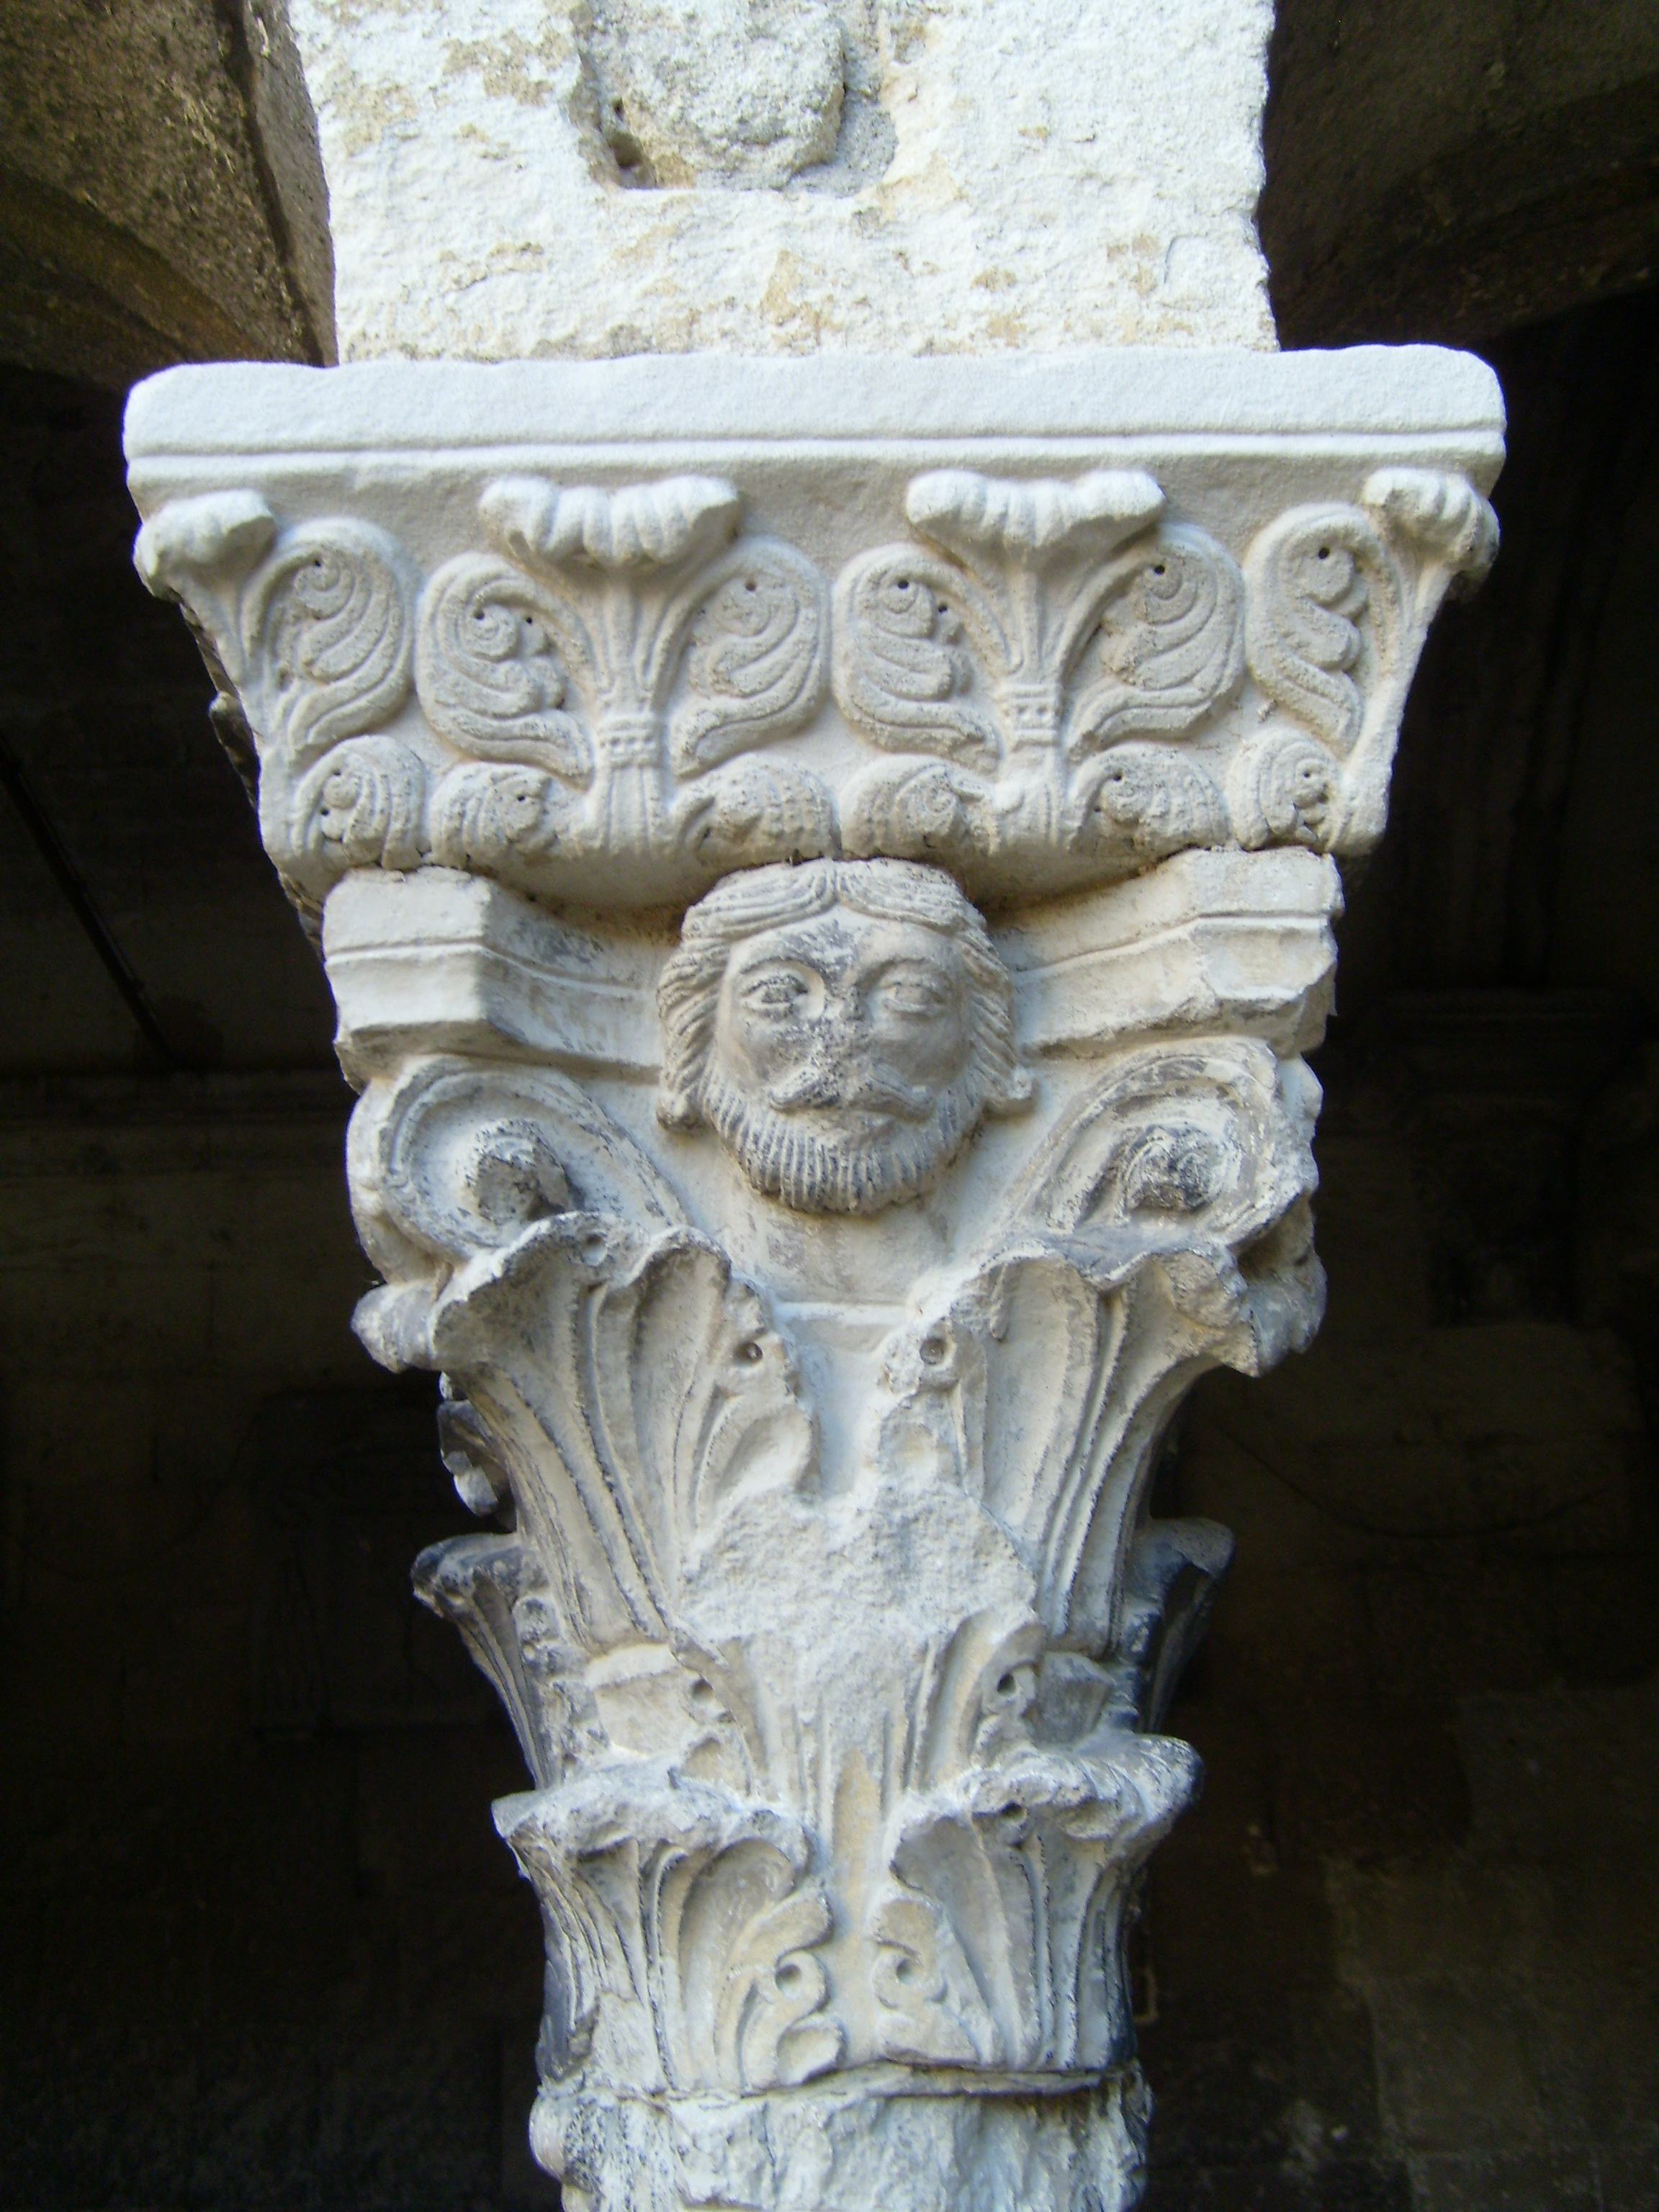 Cloister Capital (photo: SiefkinDR)